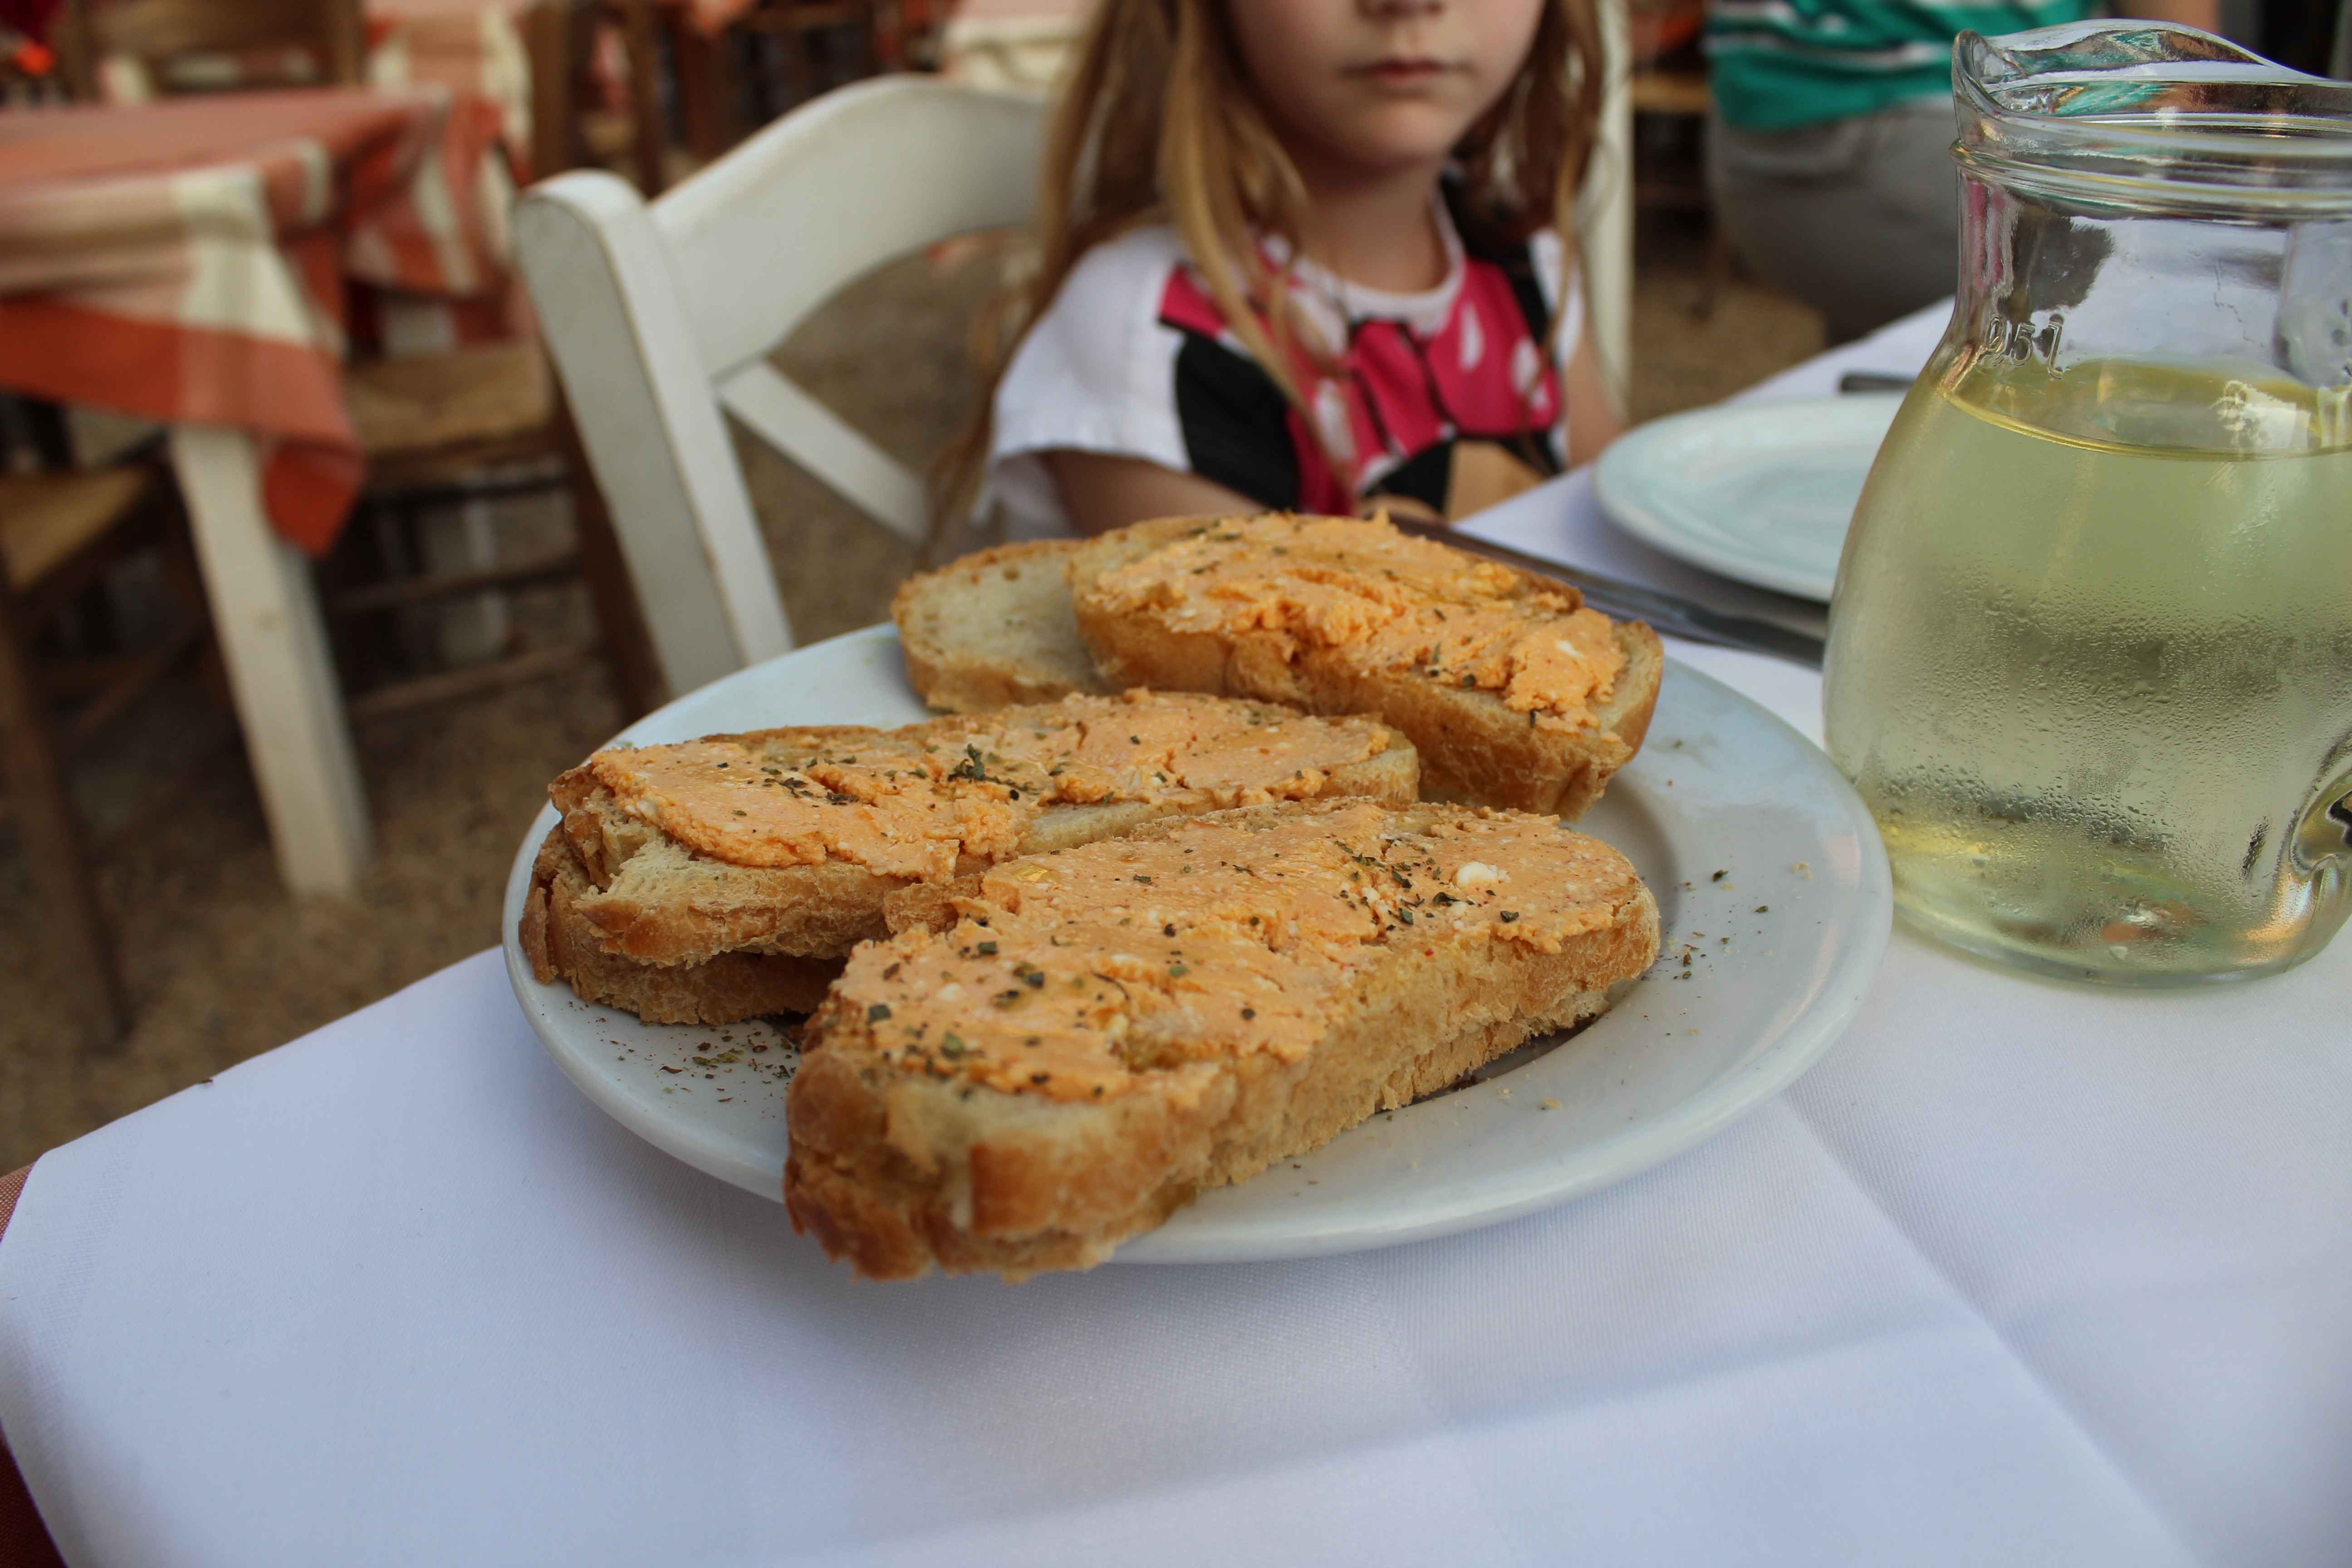 restaurants in stoupa melissa (bread with spicy cheese)